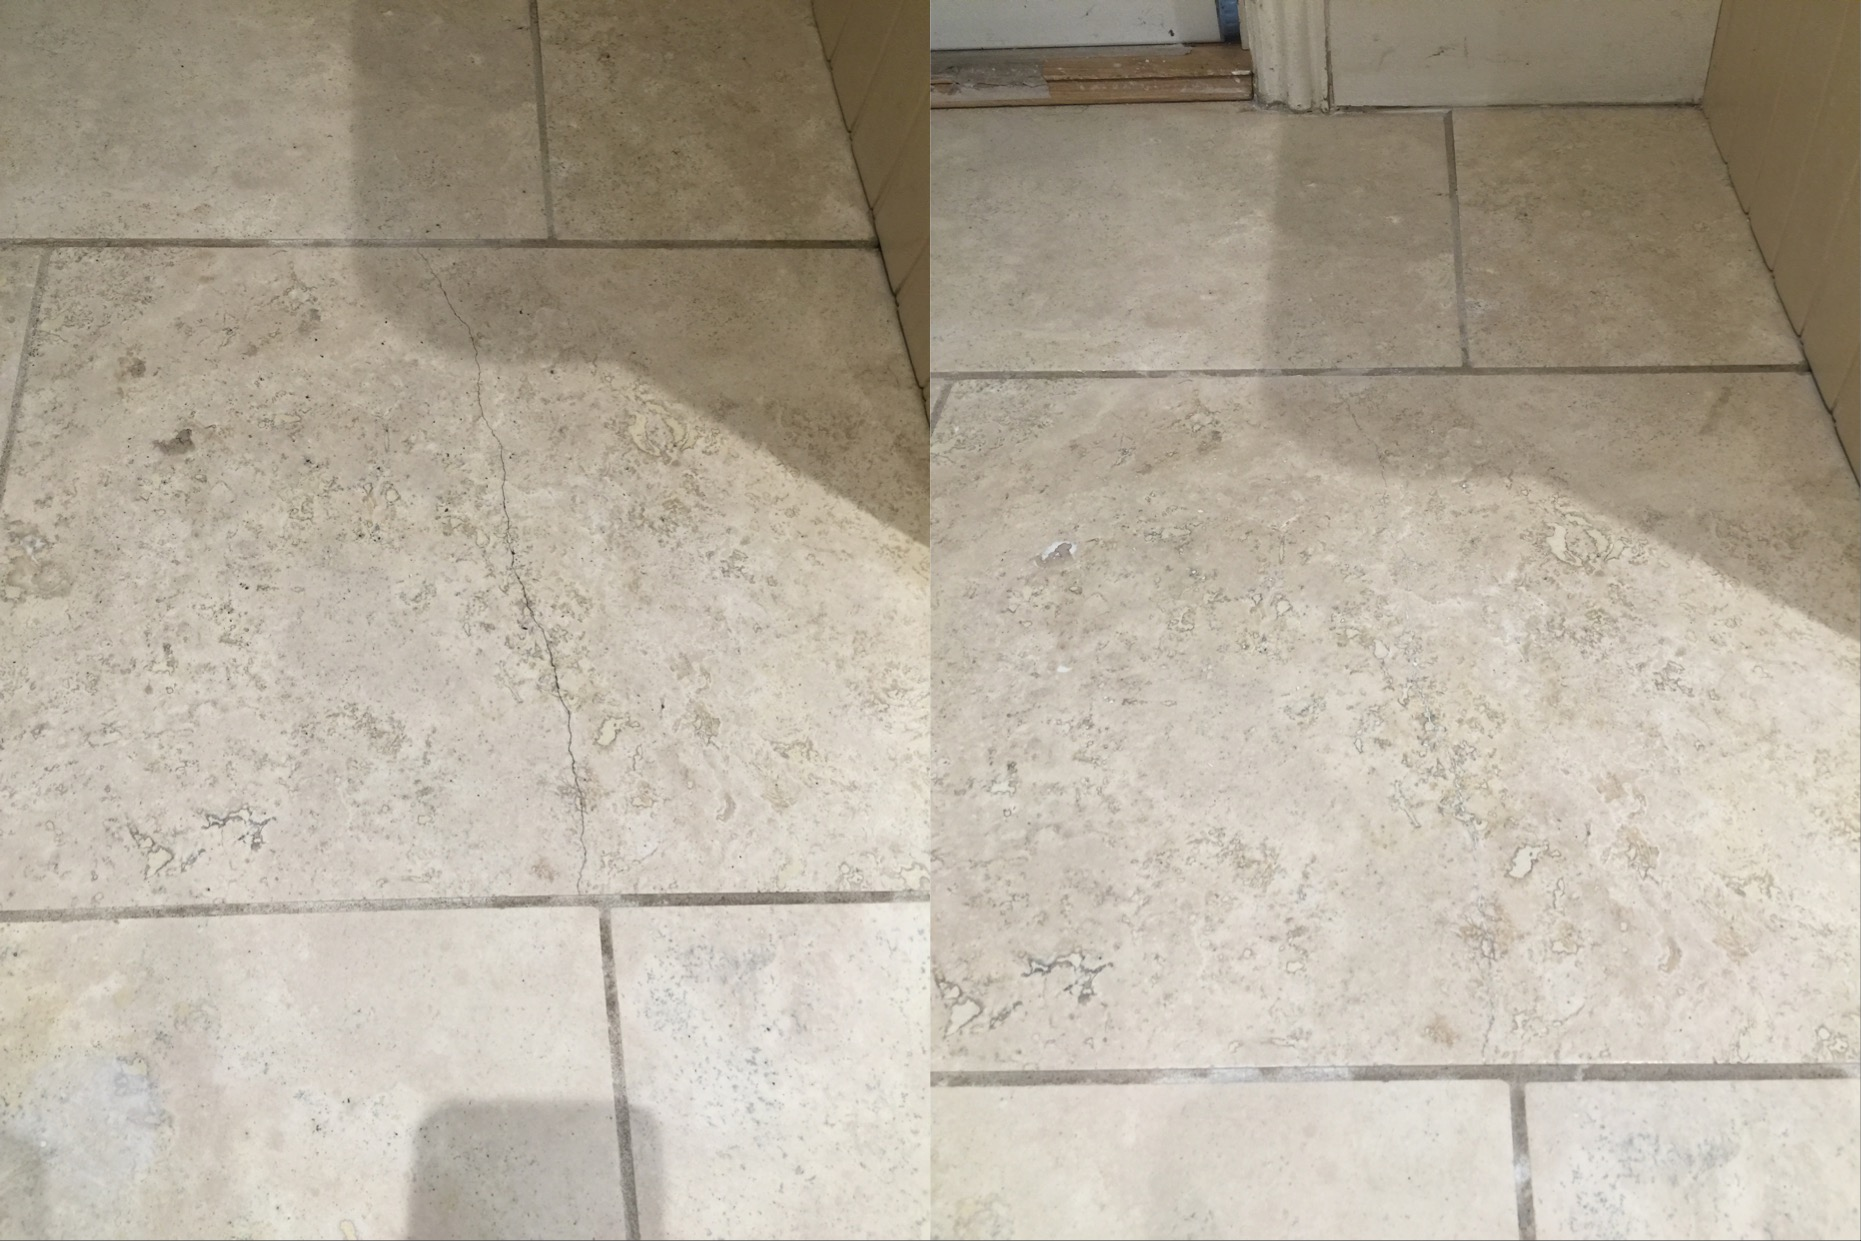 Restoring Travertine Kitchen Tiles In East Byfleet Tile Cleaners Tile Cleaning